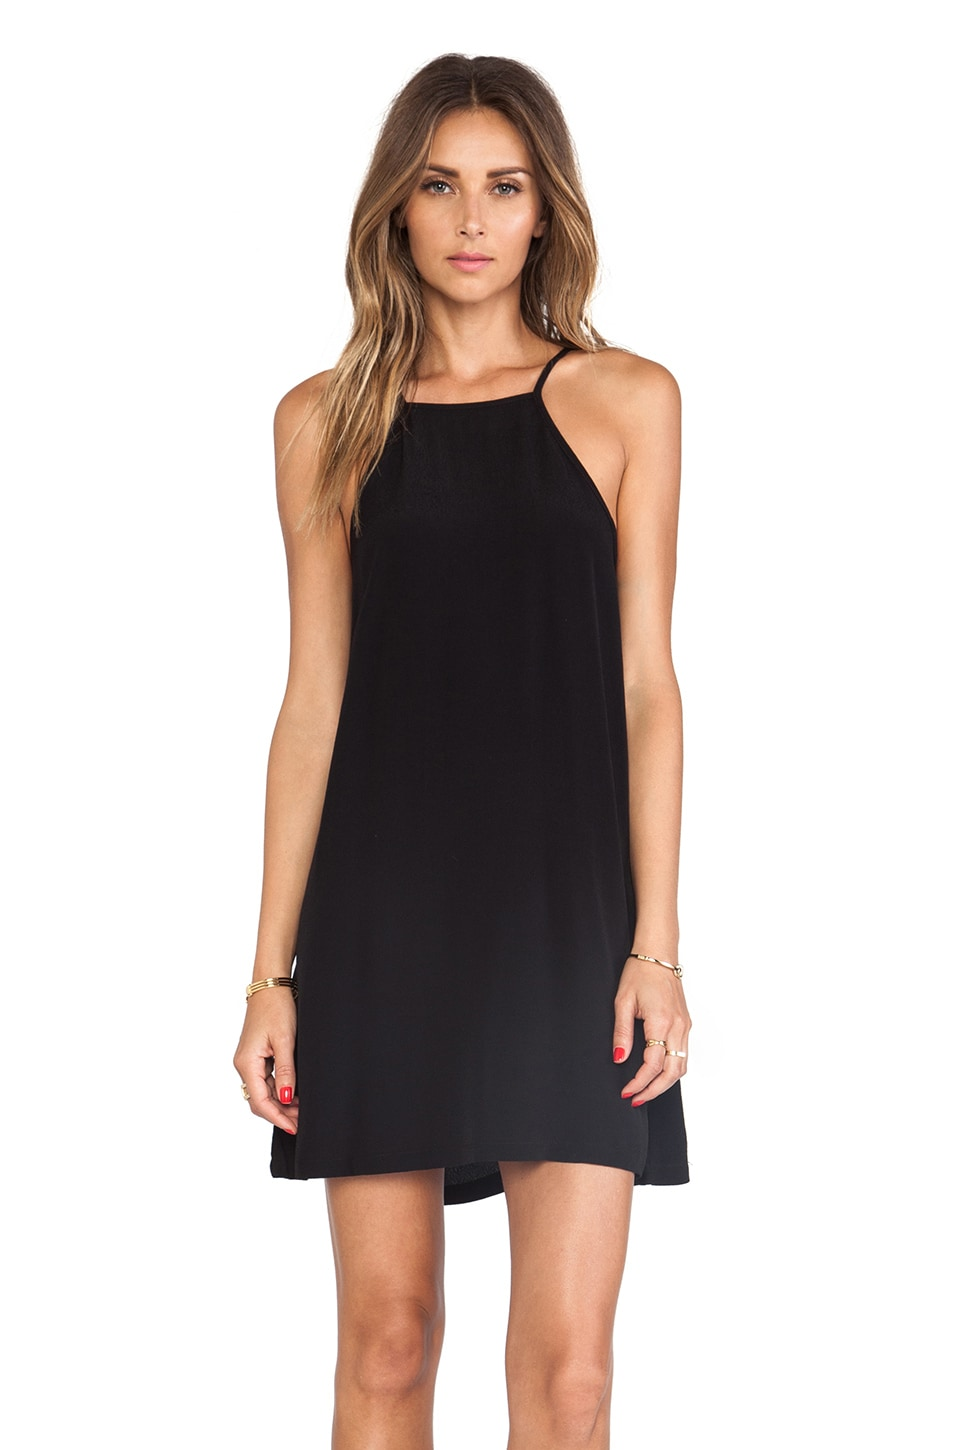 MINKPINK Hey Girl Dress in Black